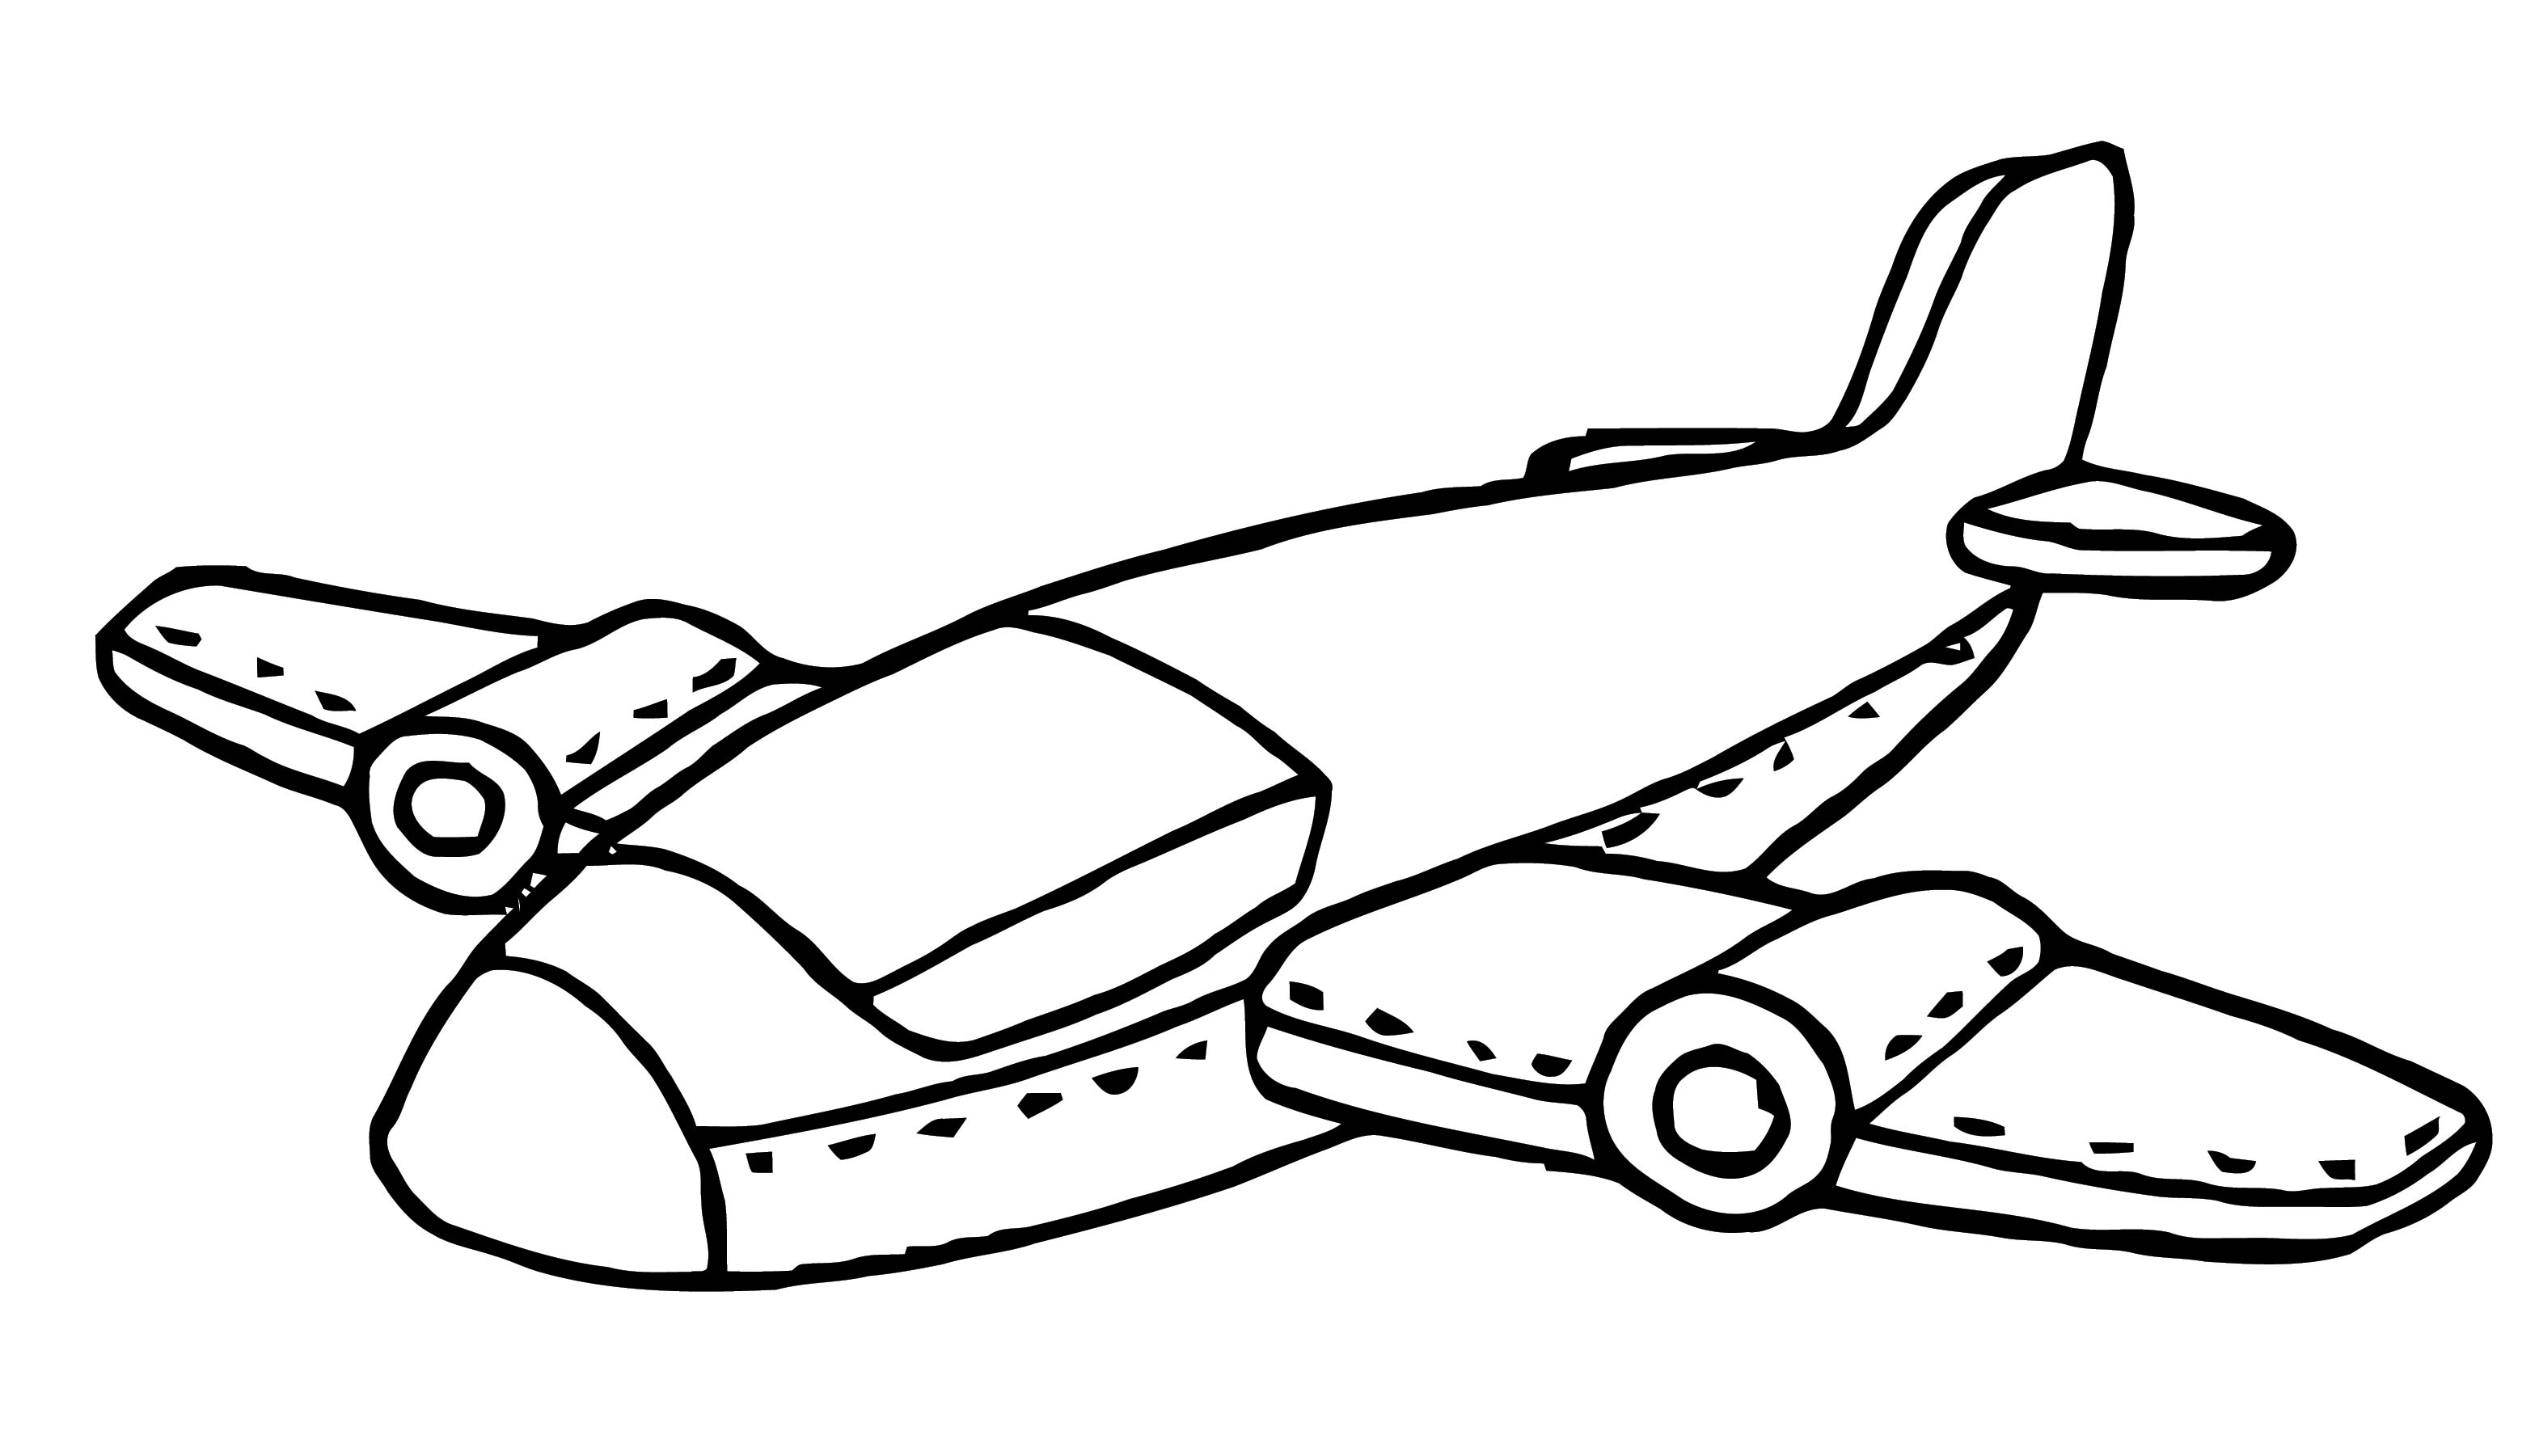 Plane We Coloring Page 54